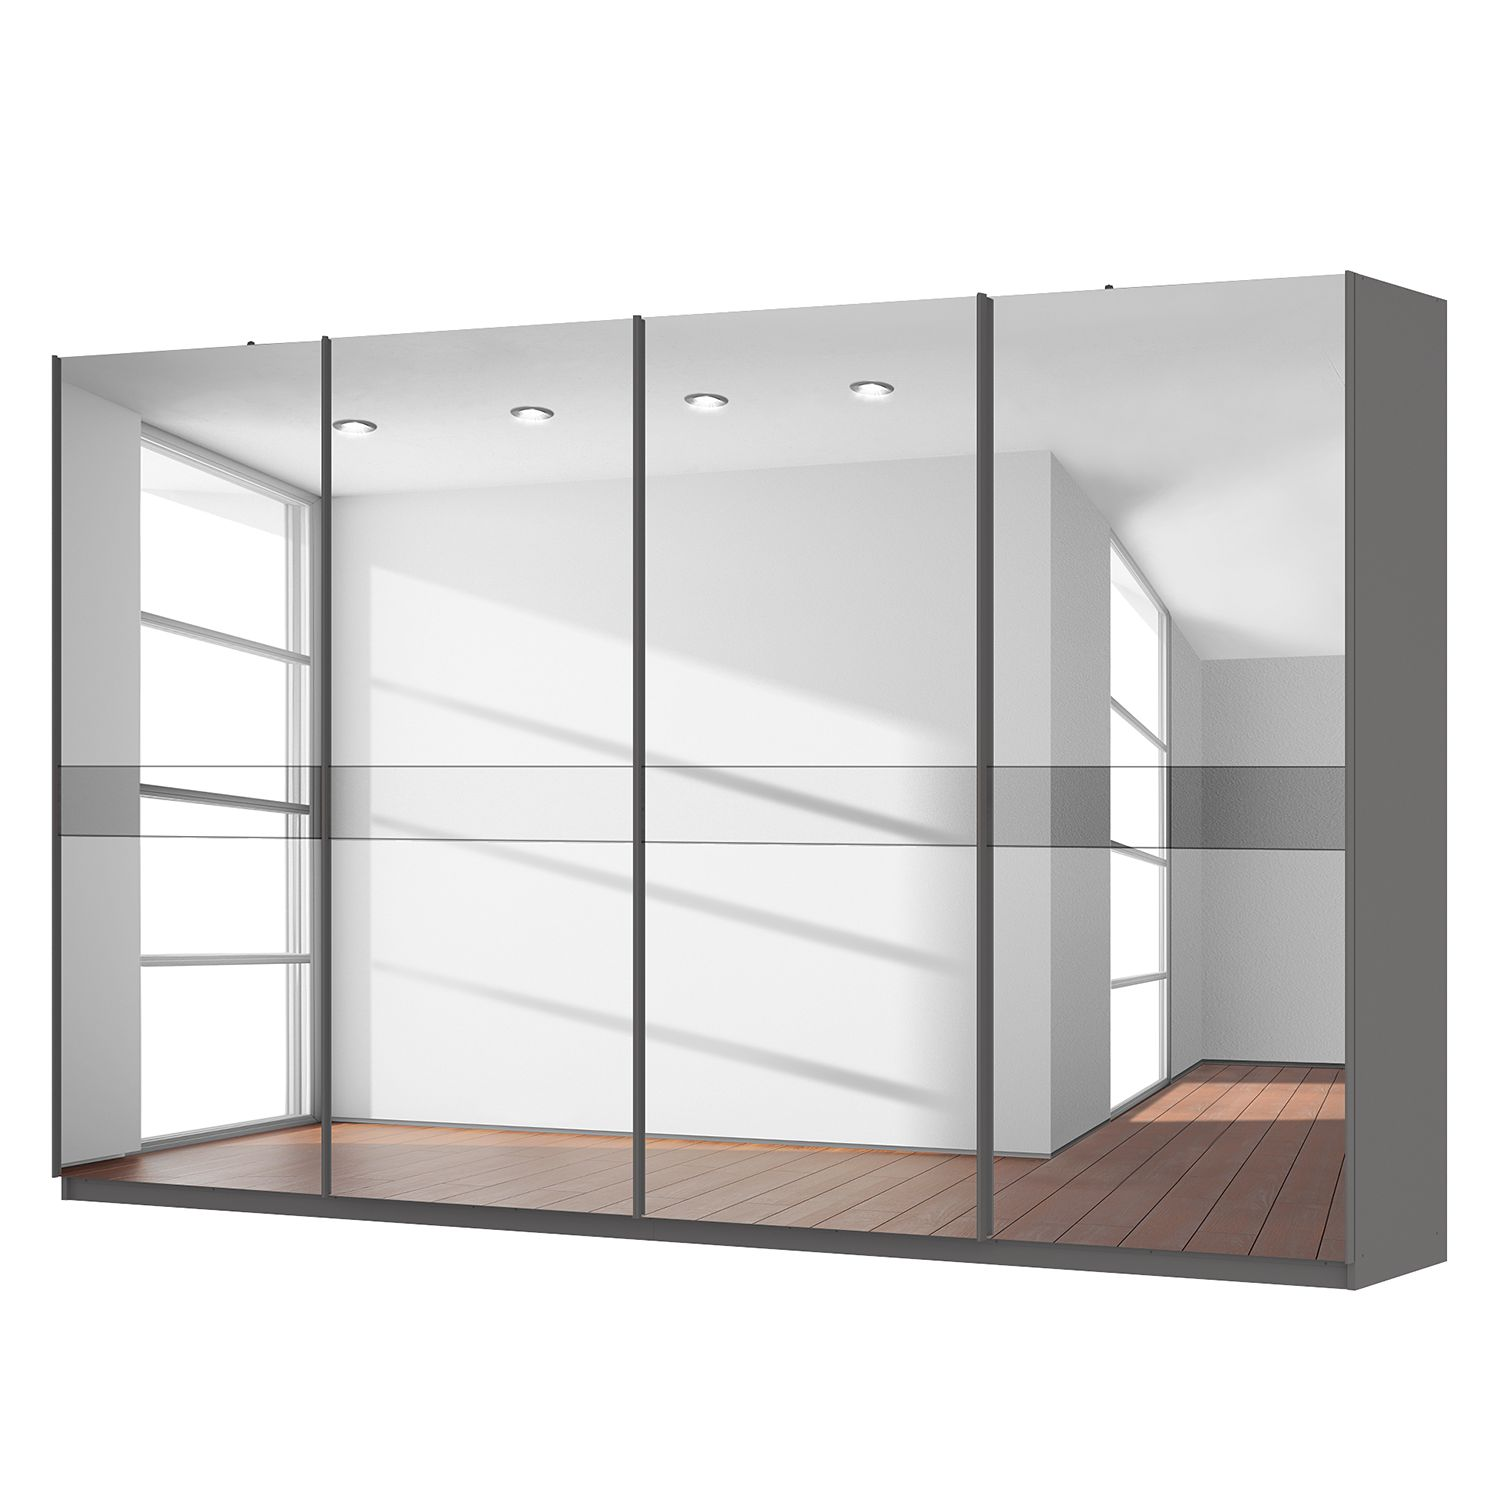 schwebet renschrank sk p graphit spiegelglas grauspiegel 360 cm 4 t rig 222 cm. Black Bedroom Furniture Sets. Home Design Ideas